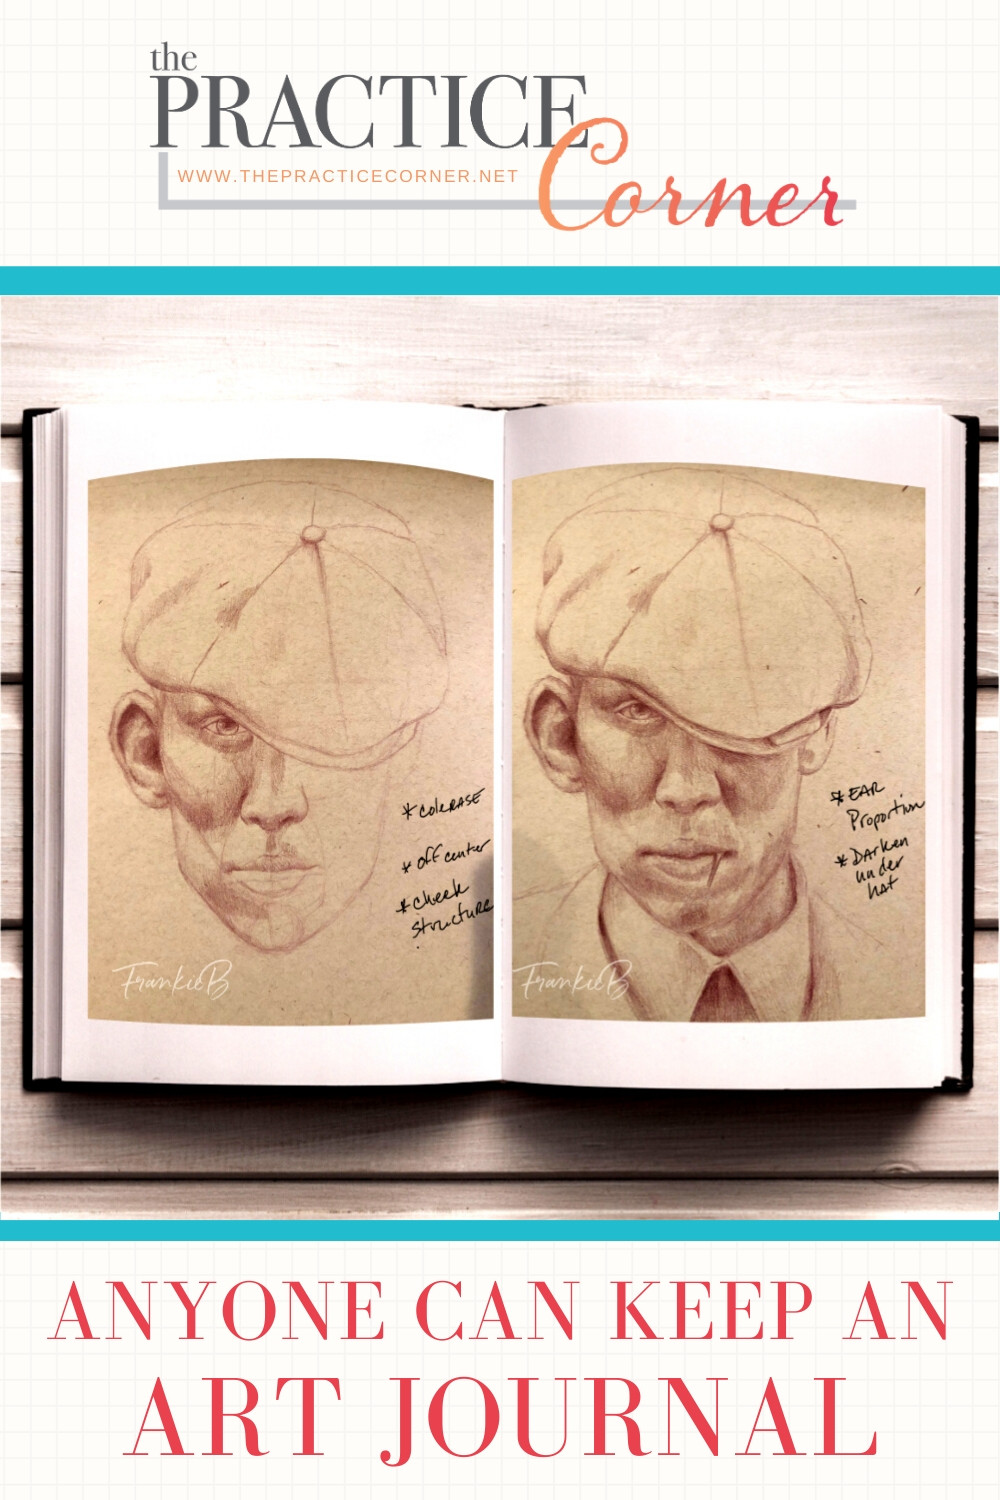 Art Journals are an important tool to assess your coloring progress. | How to improve your coloring | #coloredpencil #coloredpencilpractice  #thepracticecorner #realisticart #coloringtechniques #coloredpencilart